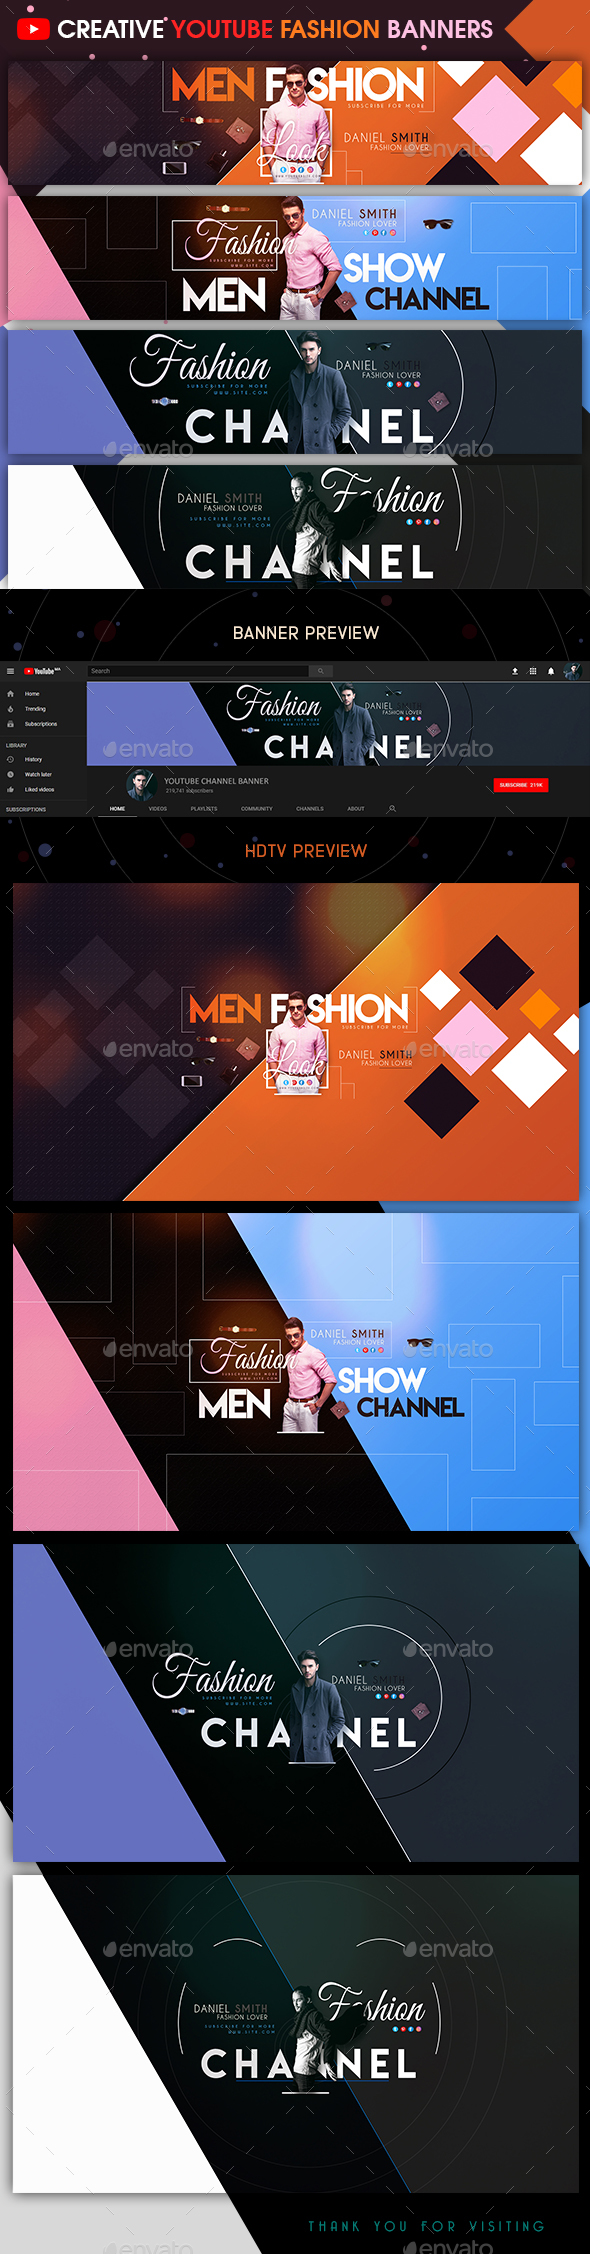 Creative Fashion YouTube Banners - YouTube Social Media